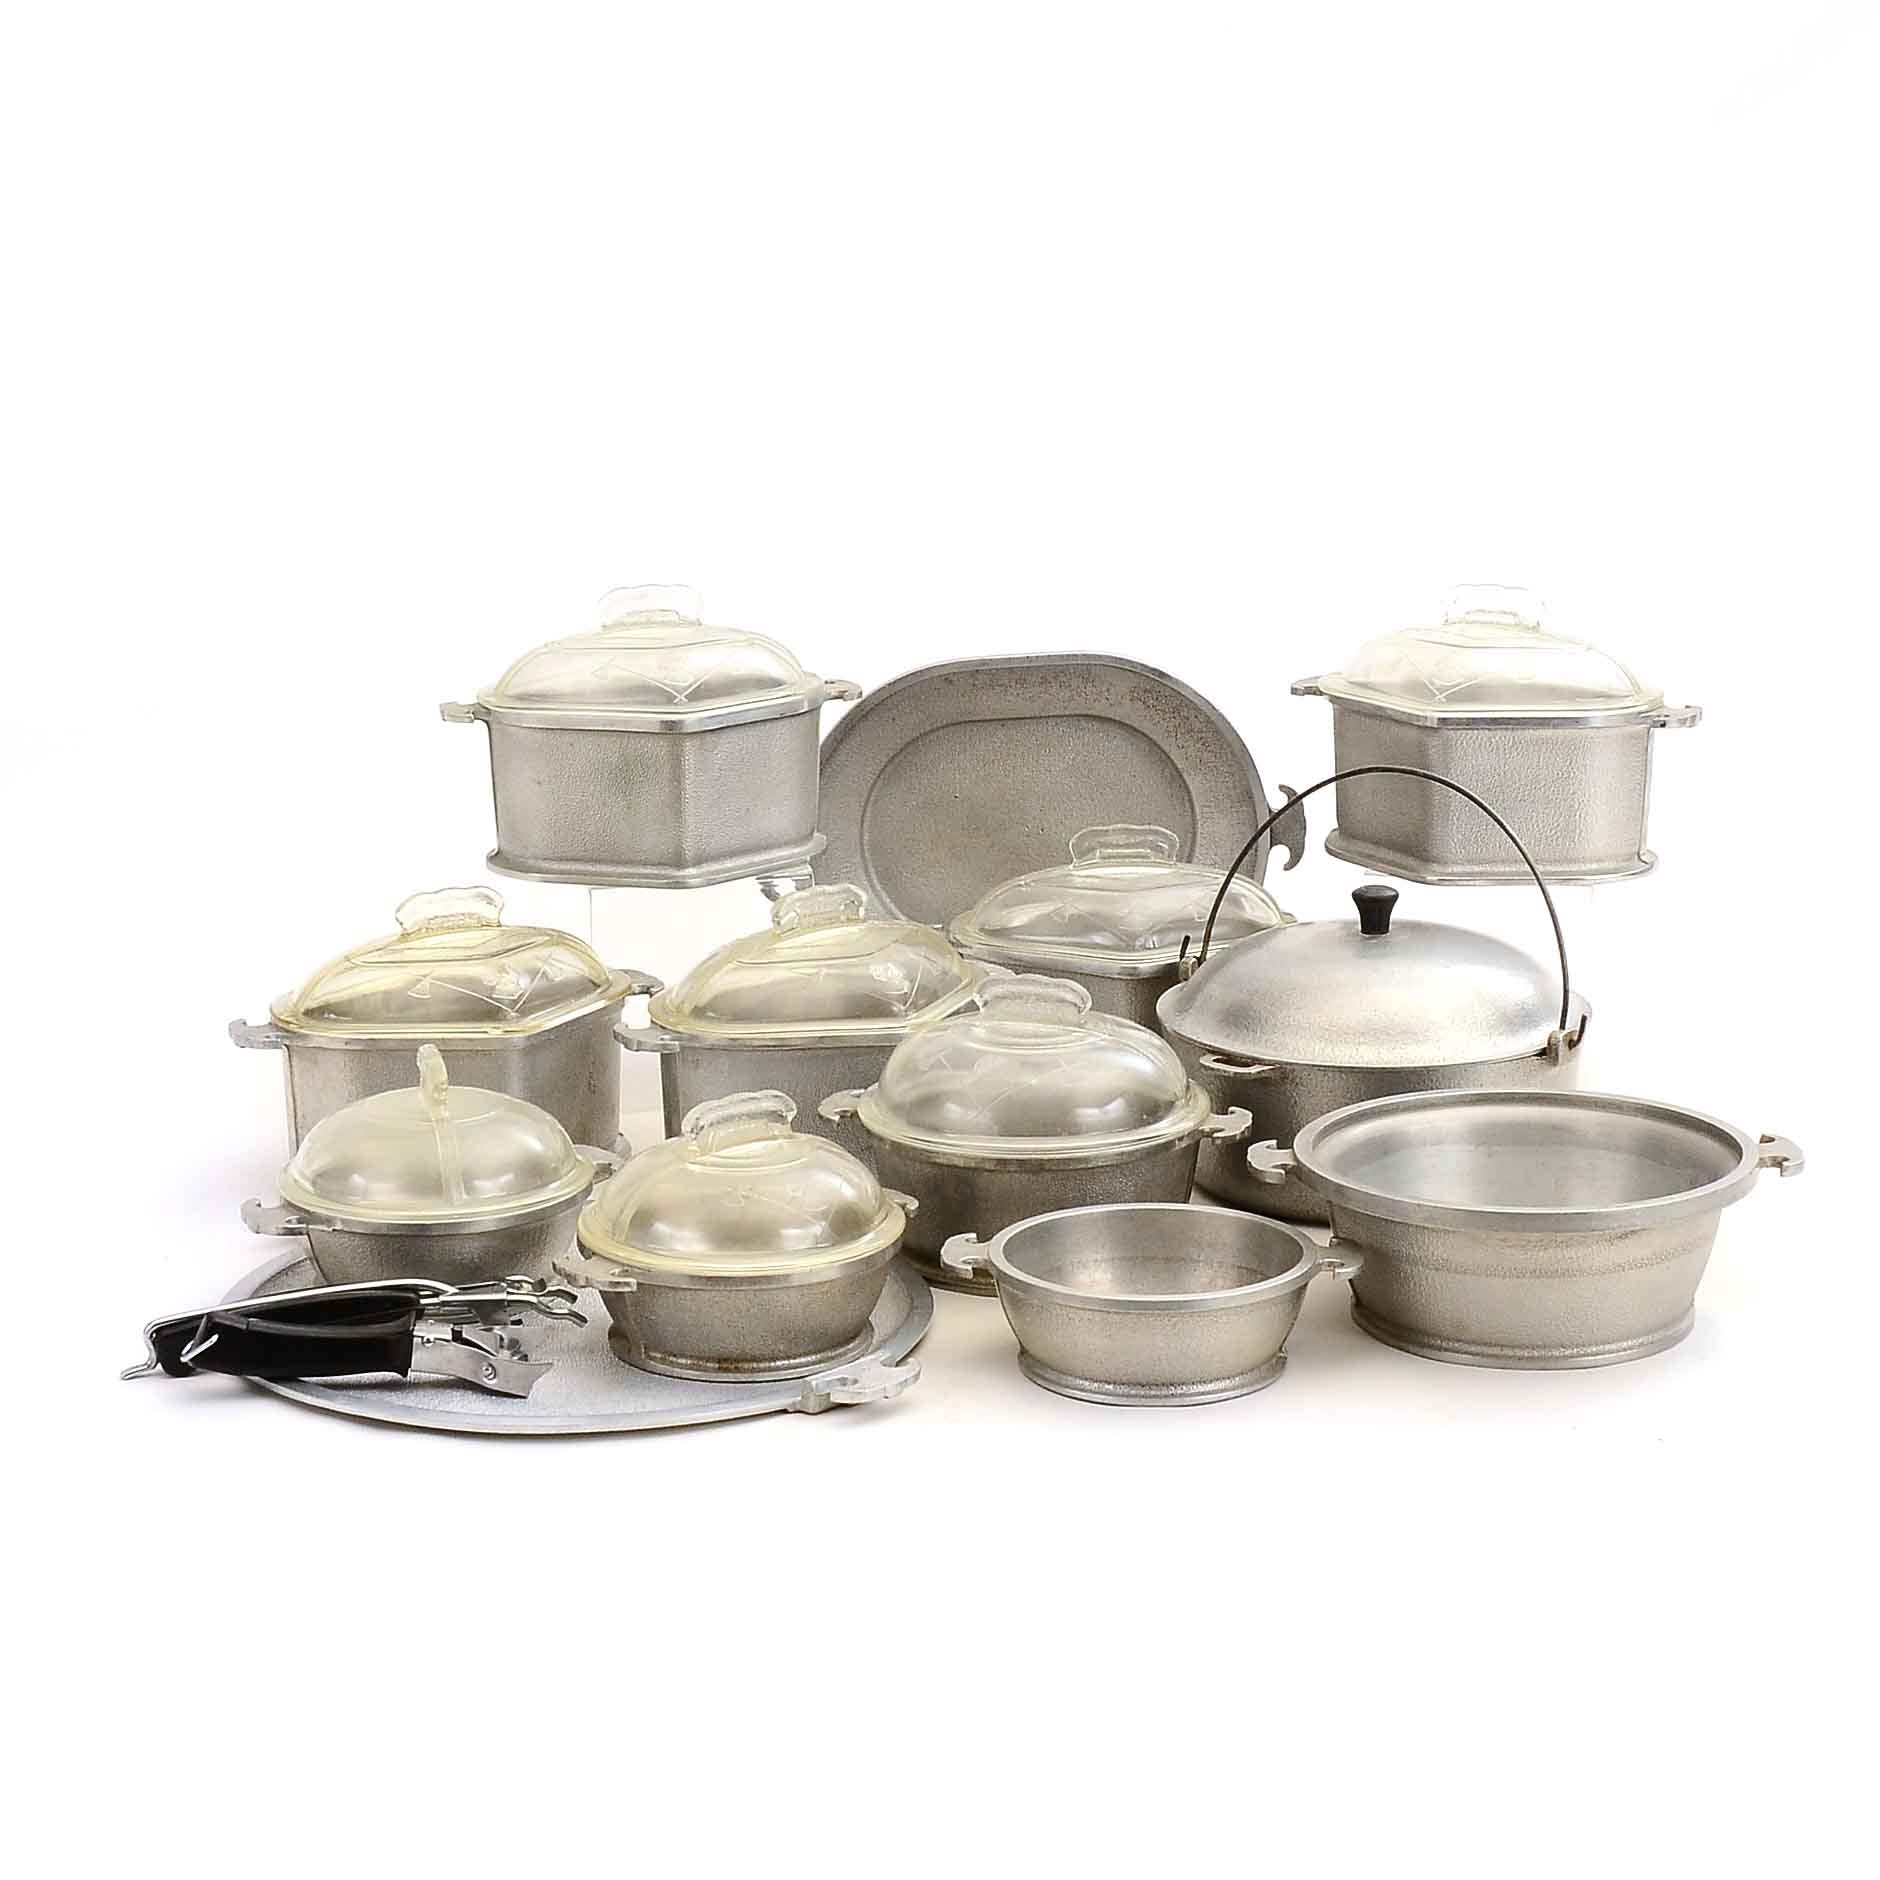 Collection of Vintage Guardian Serving Ware